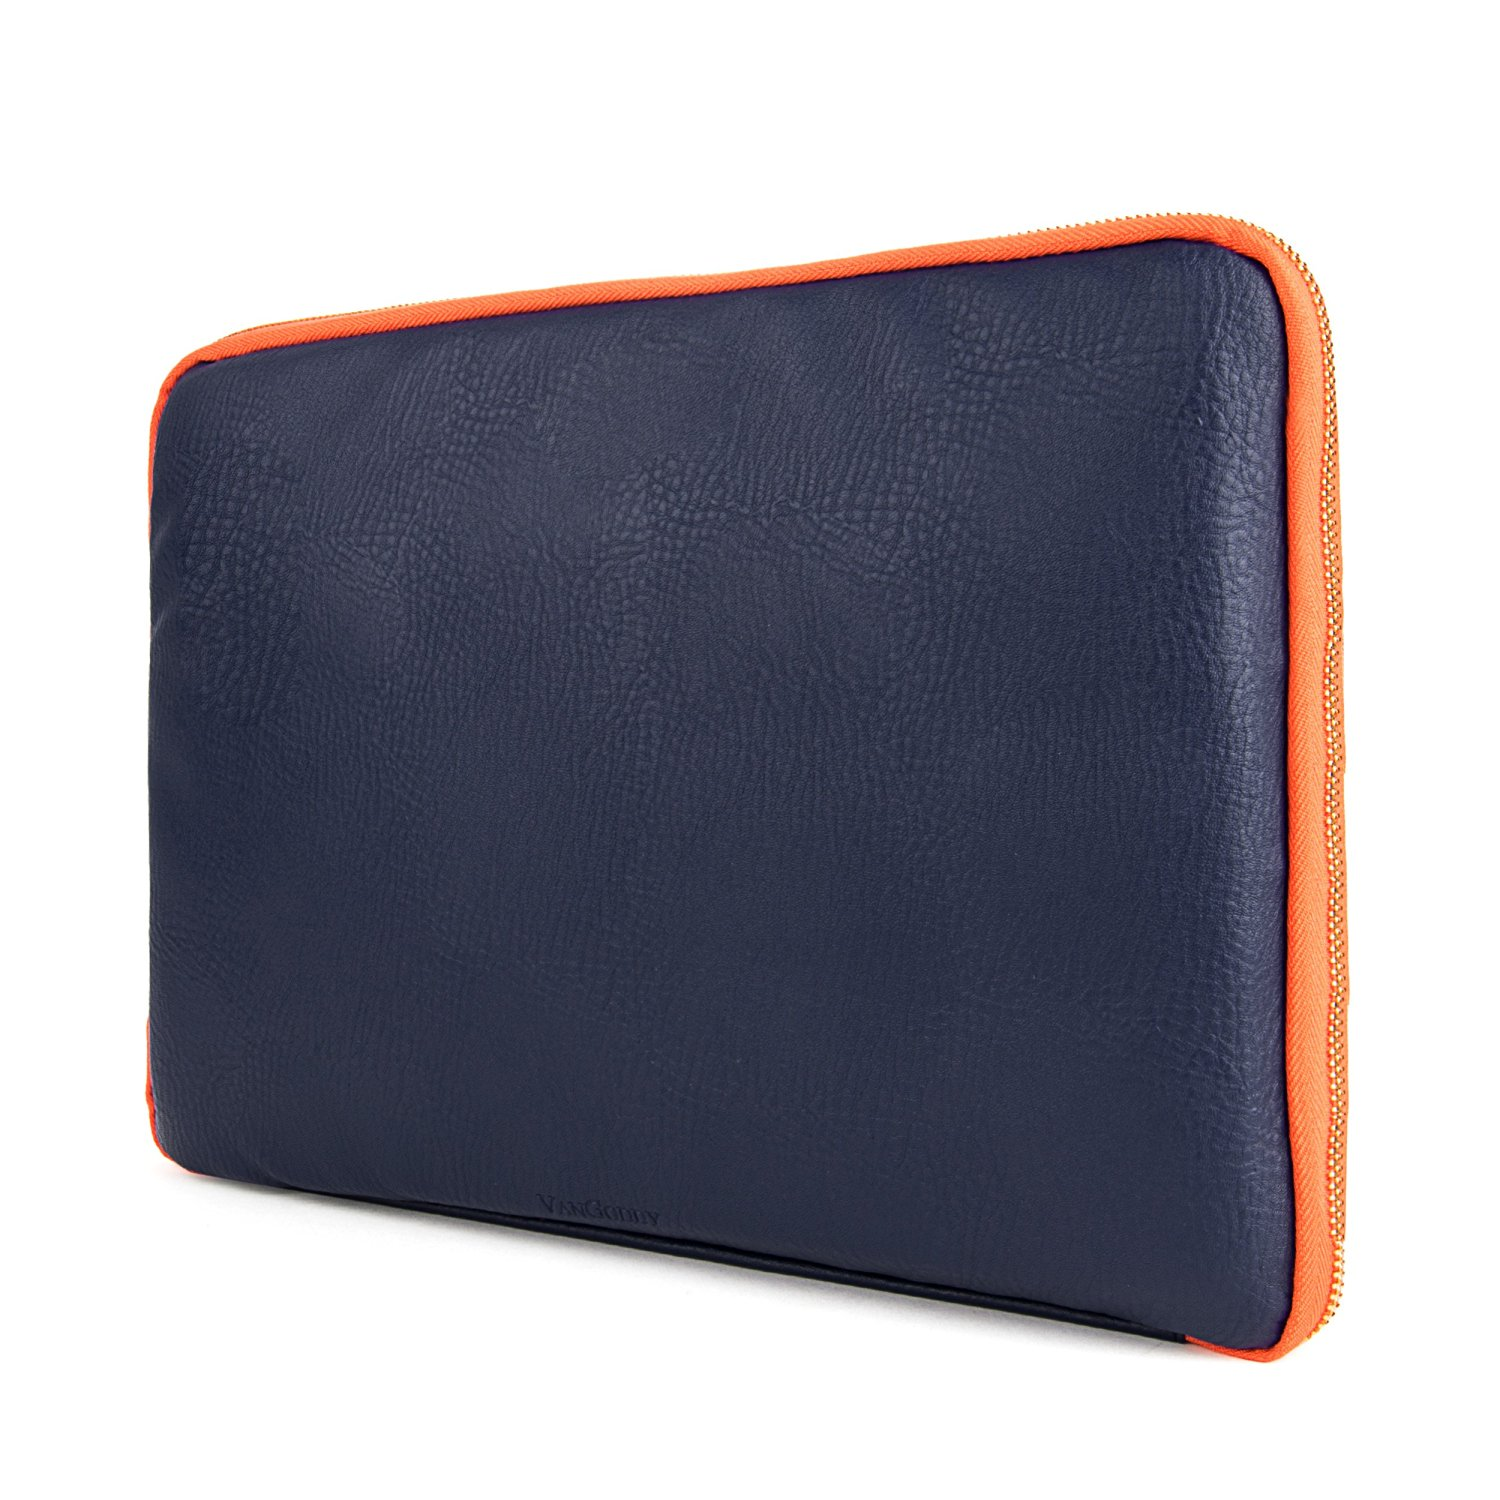 Laptop Sleeve for 11 to 13.3-inch Asus Vivo, Chrome Book, Transformer, Zen, U Series [Blue & Orange]